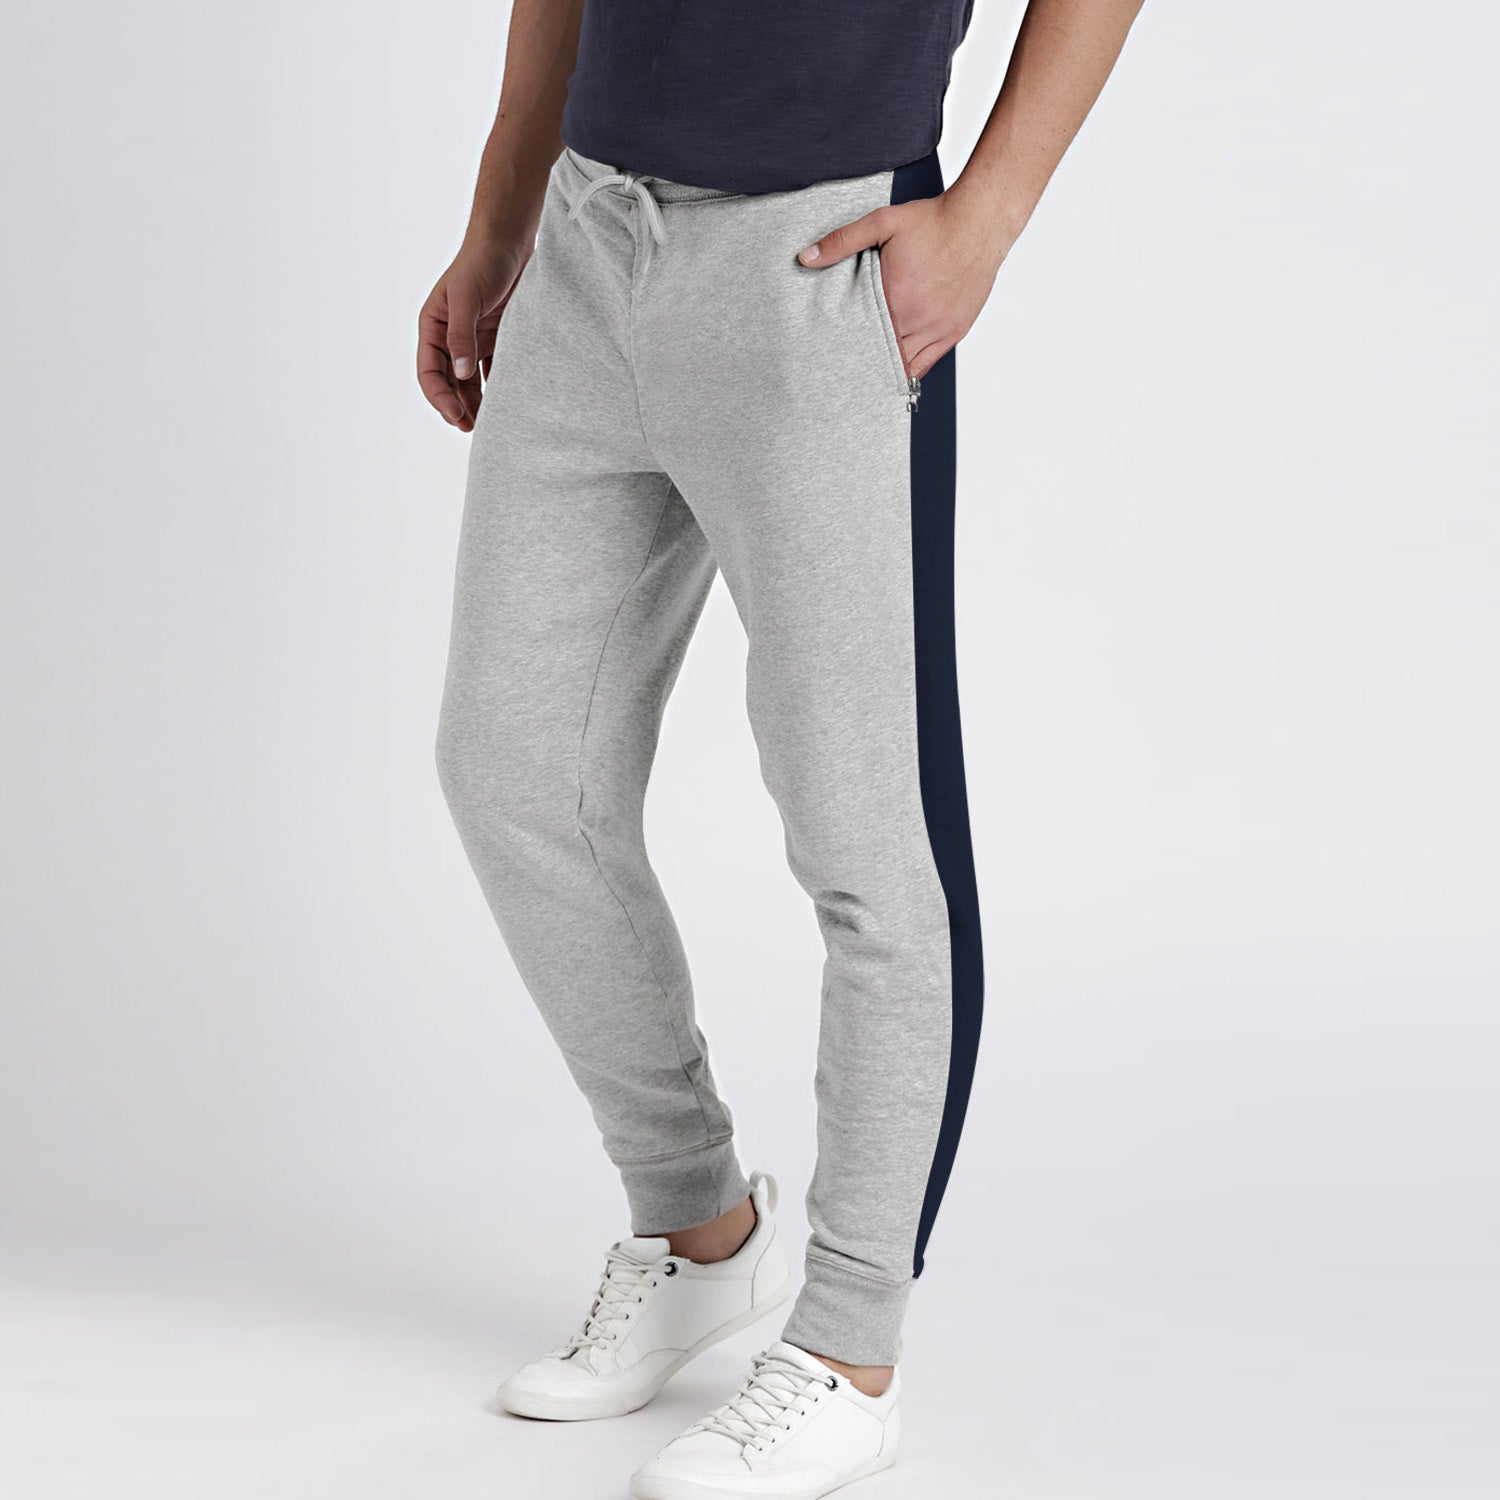 Diesel Summer Slim Fit Panel Trouser For Men-Light Grey & Navy Stripe-BE11925